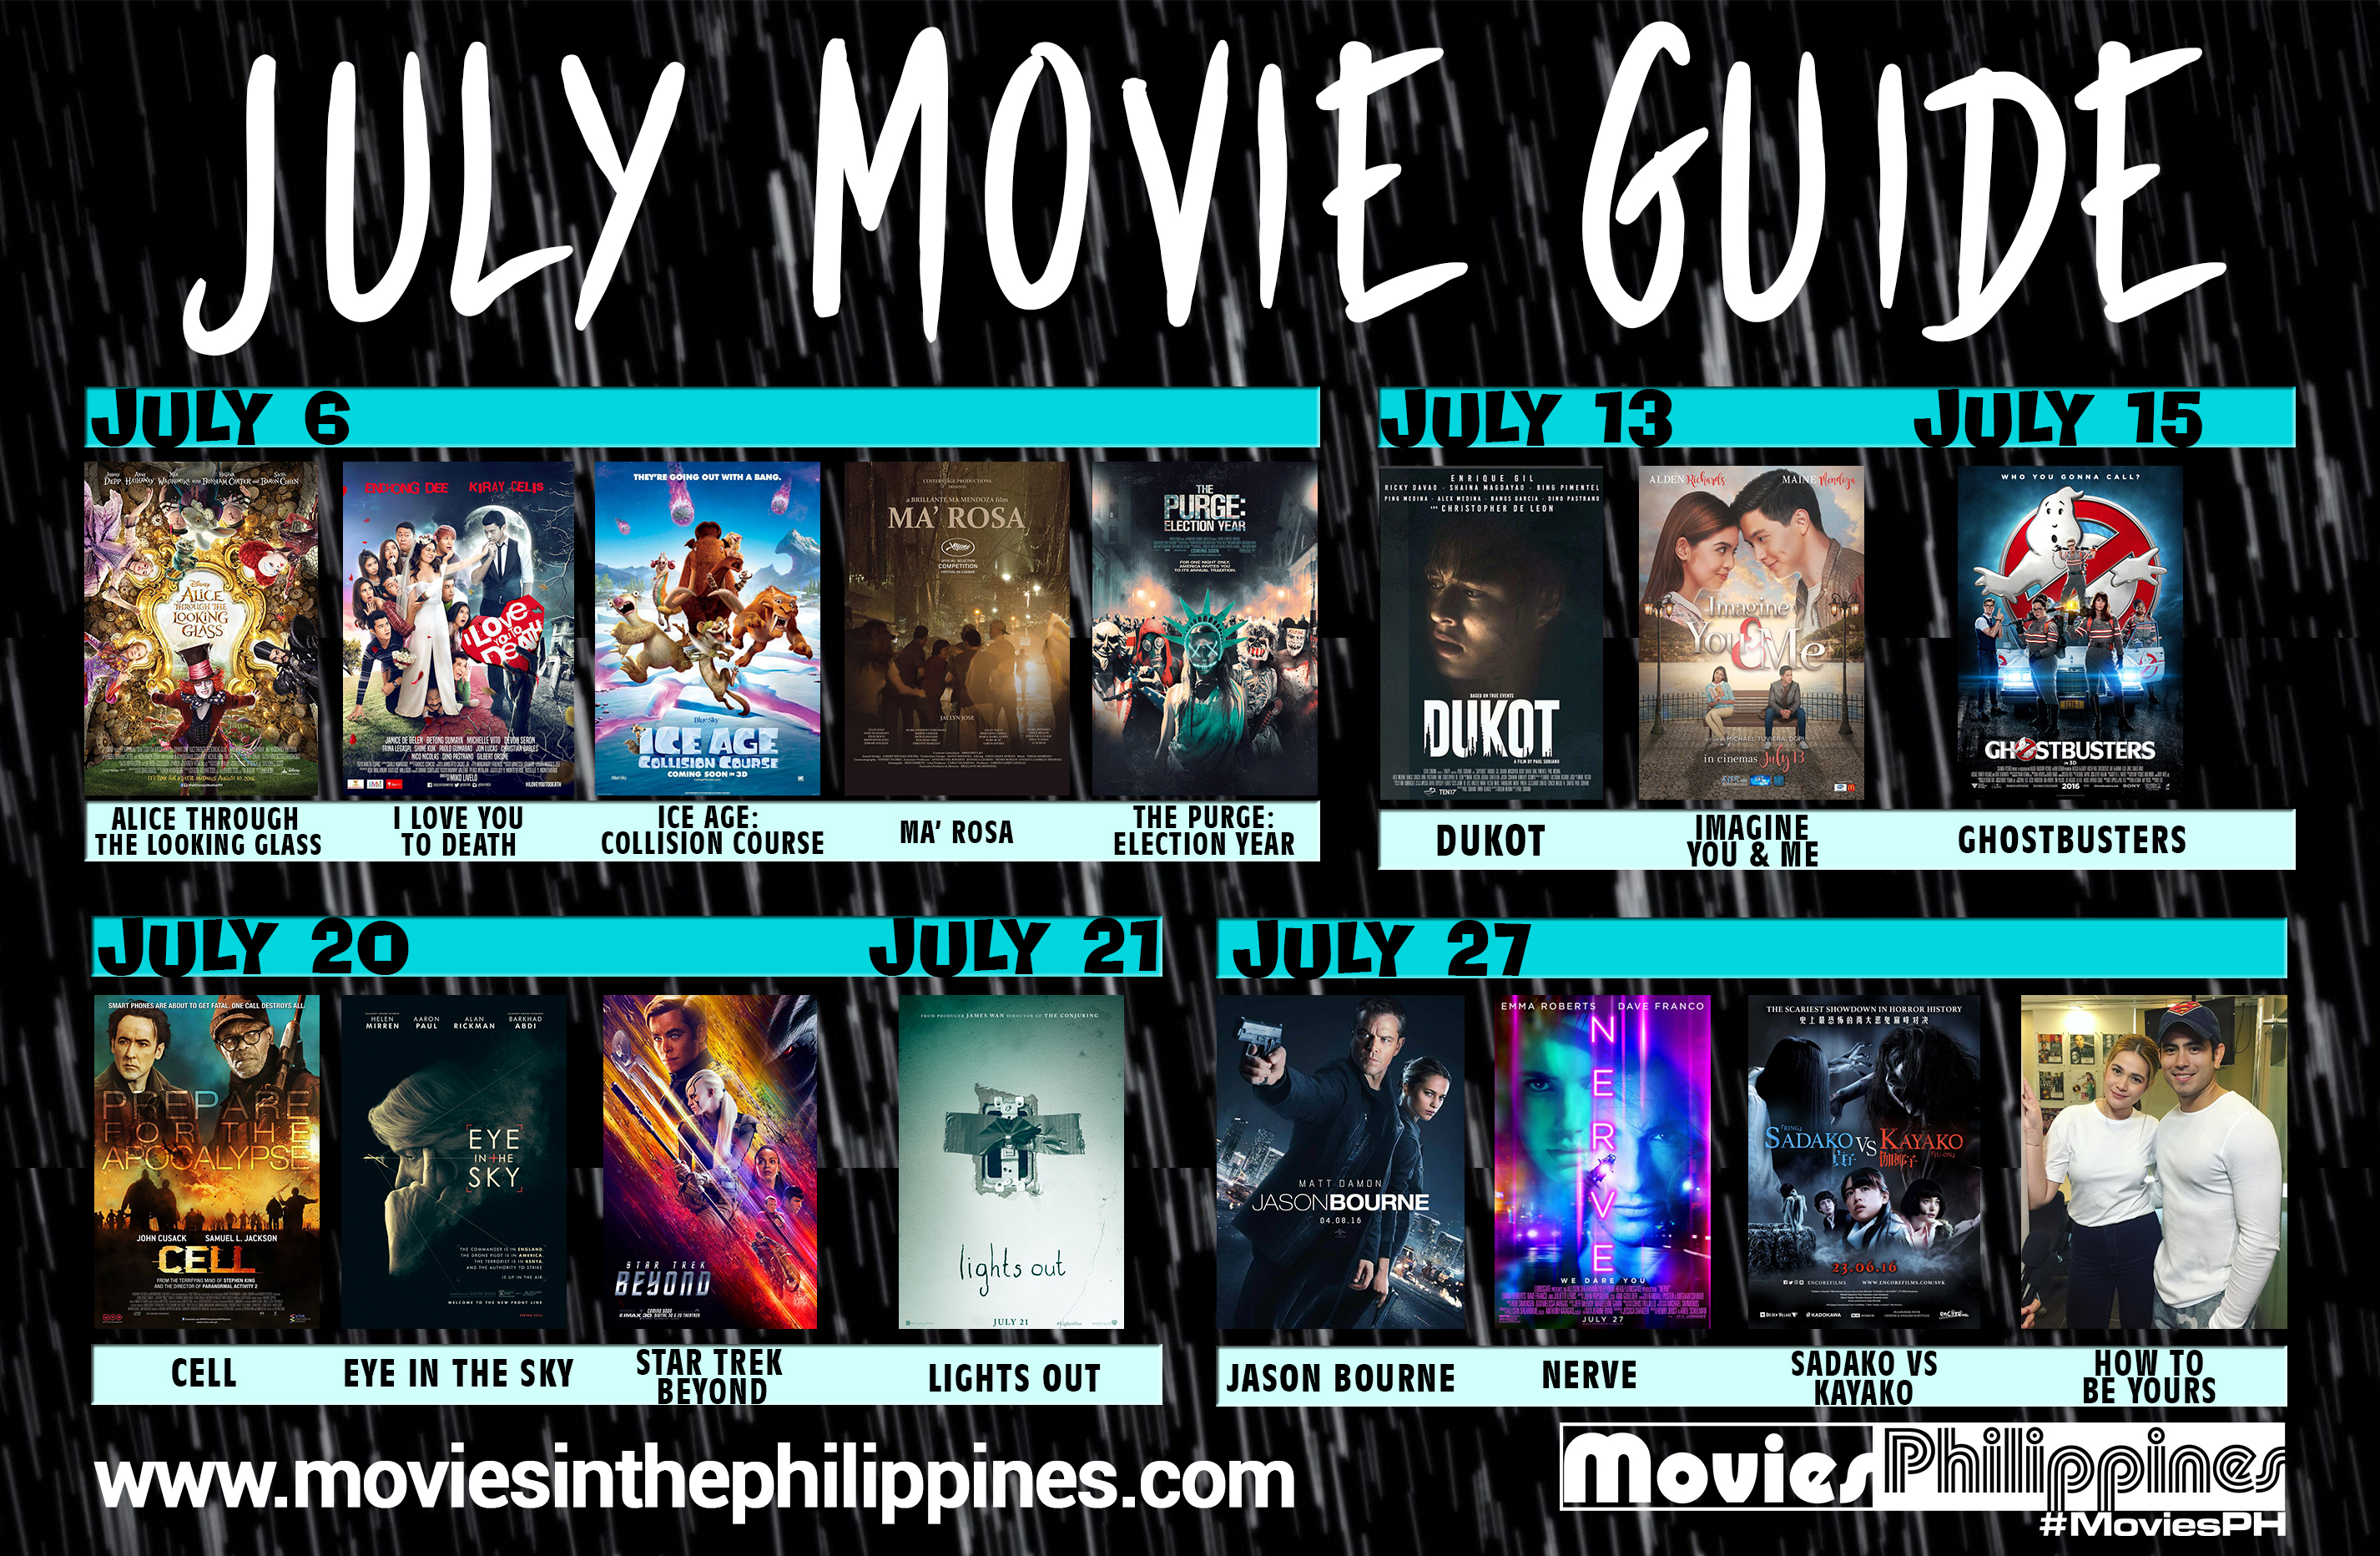 July Movie Guide